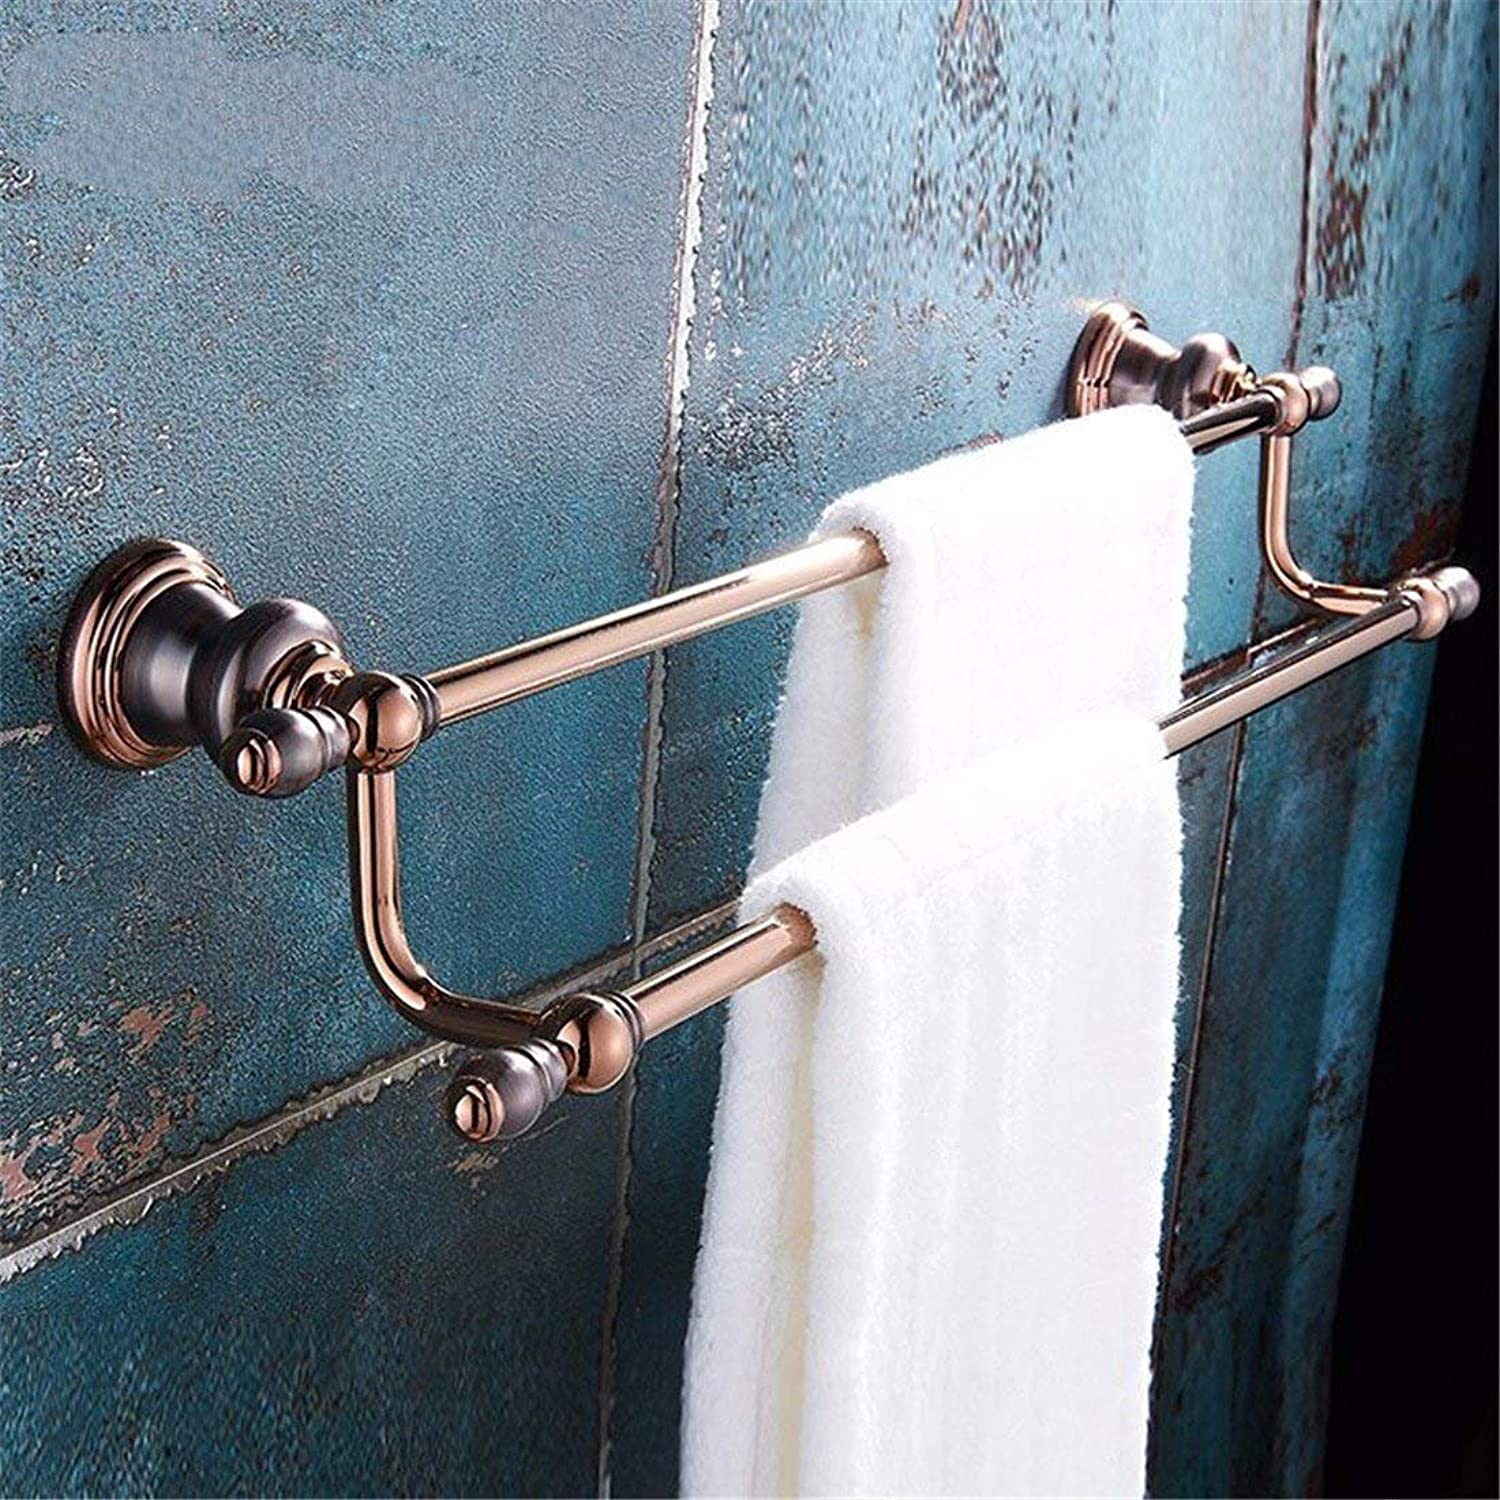 Pink gold, Dry-Towels in The Main Bathroom All in Copper Handle, Double Pole